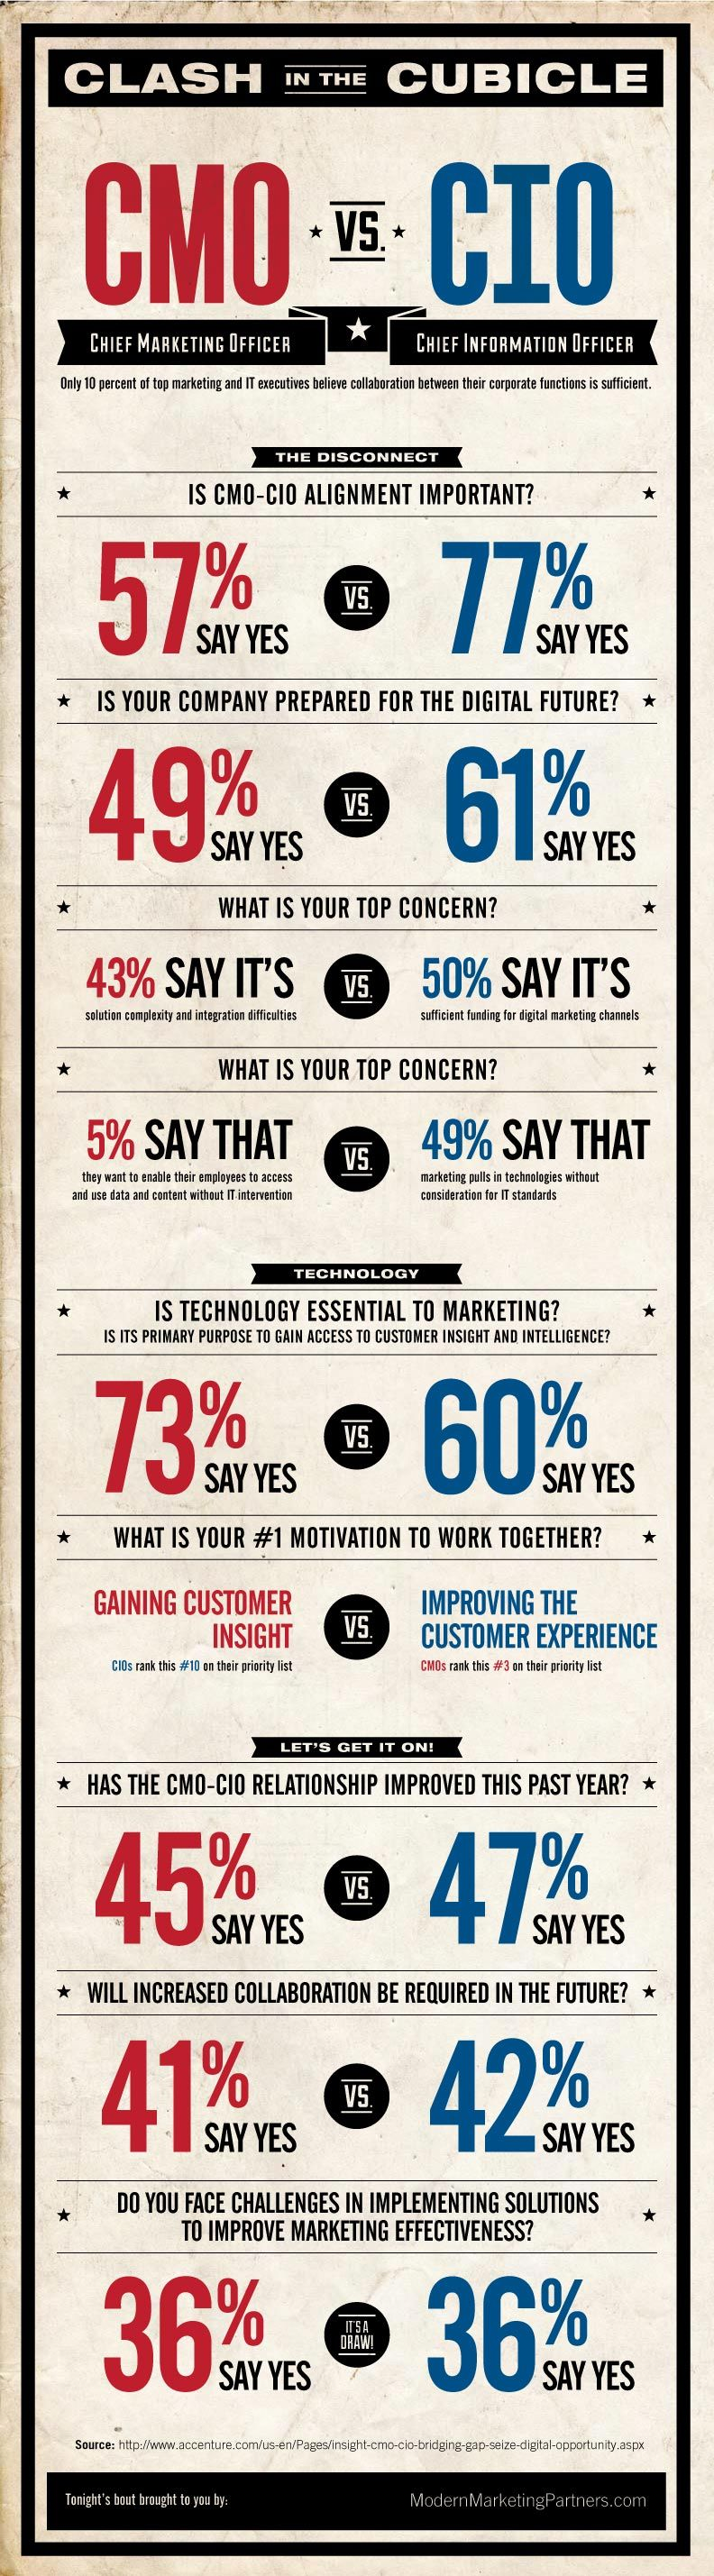 Clash In The Cubicle: CMO VS CIO #Infographic